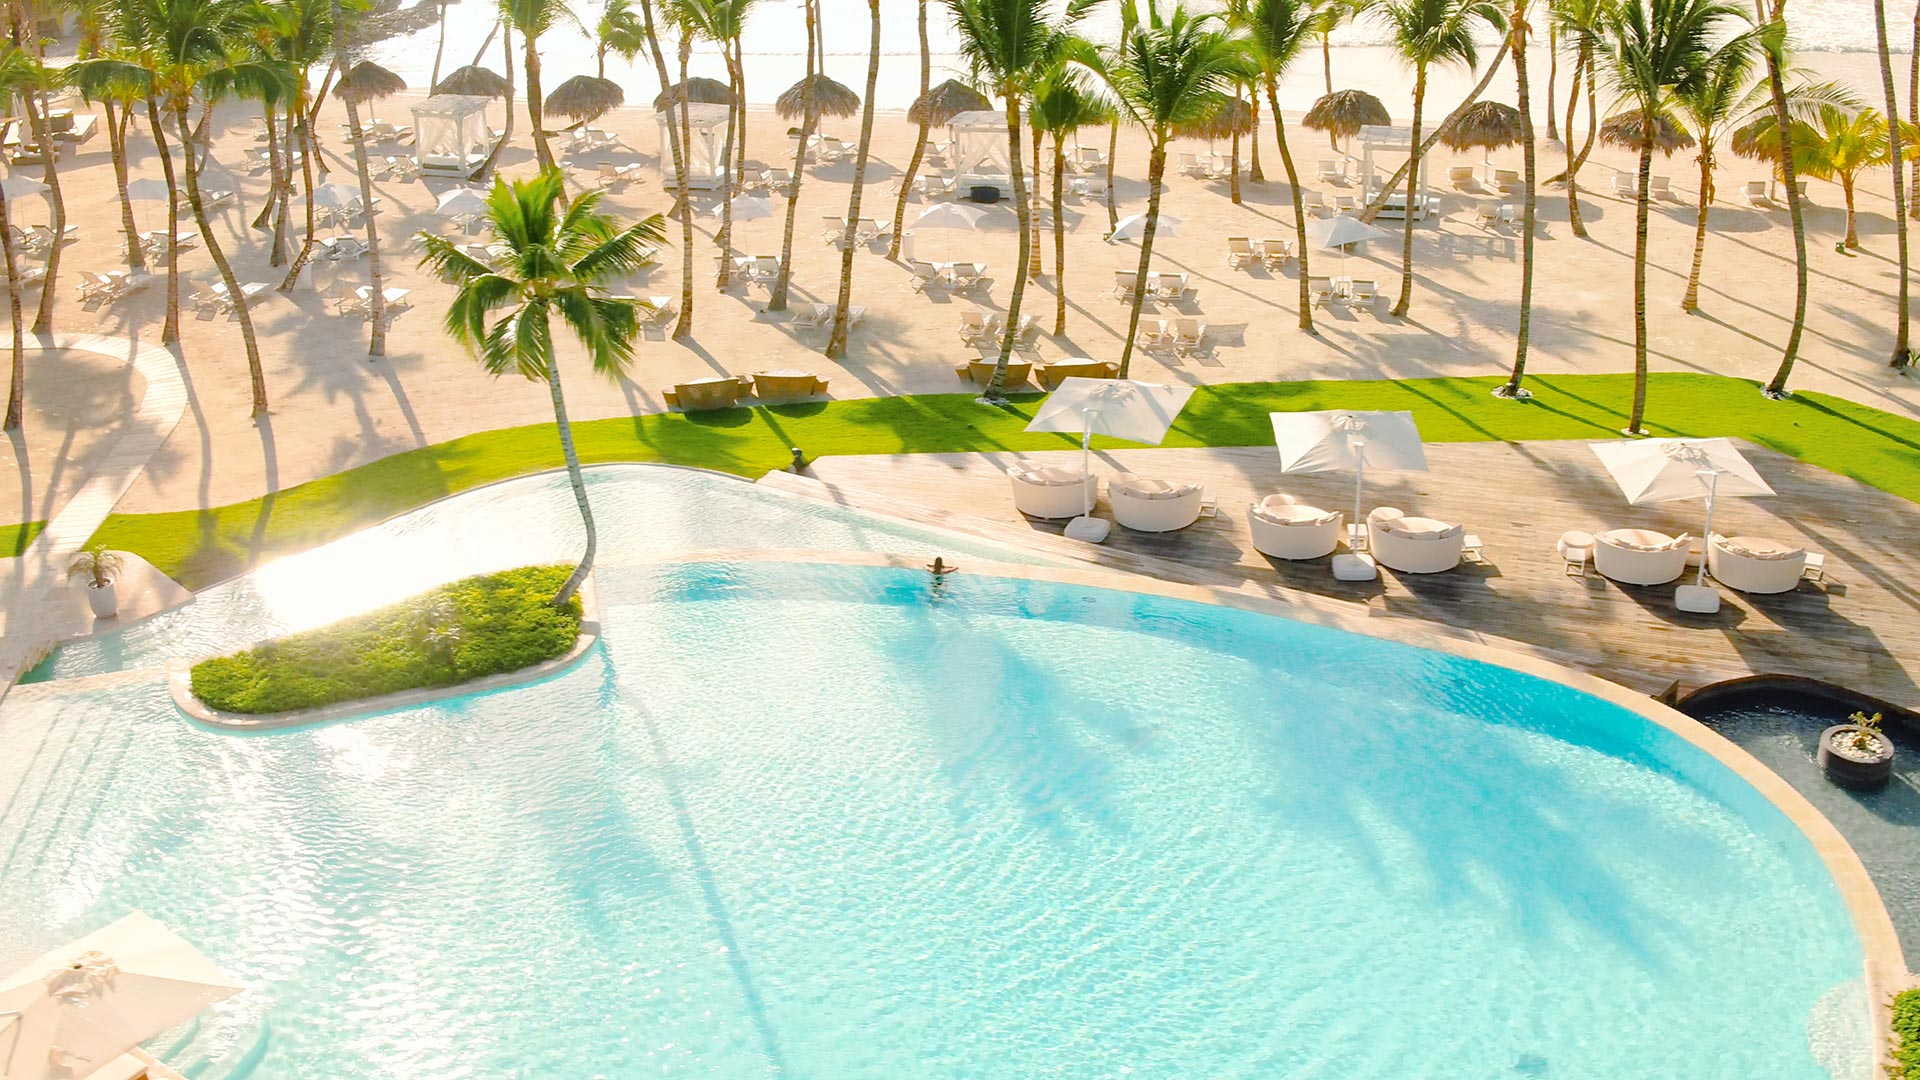 The 15 Best Luxury Resorts in the Caribbean for 2021